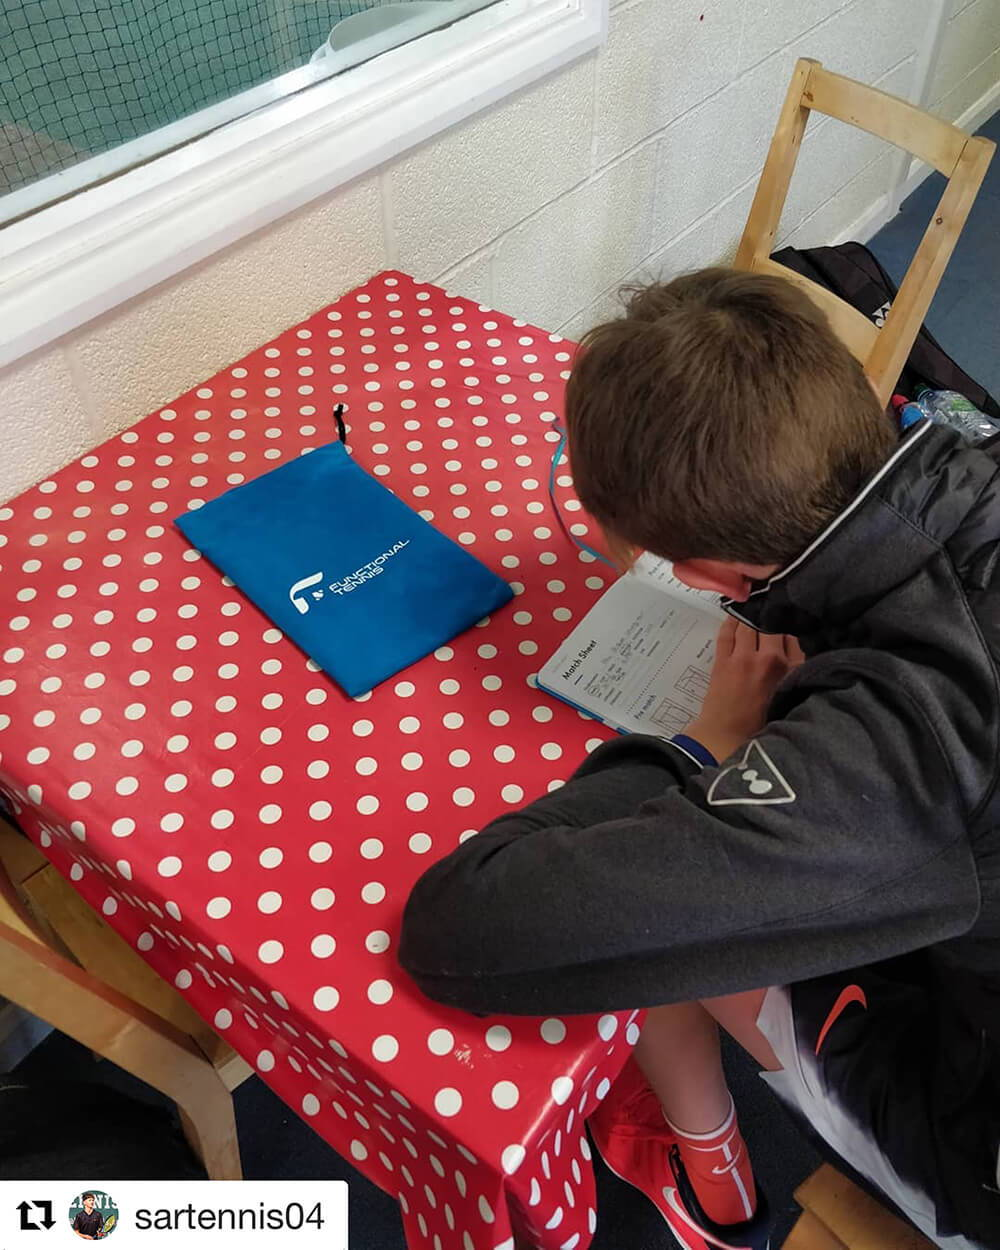 Sam writing down his match report with the Functional Tennis Journal